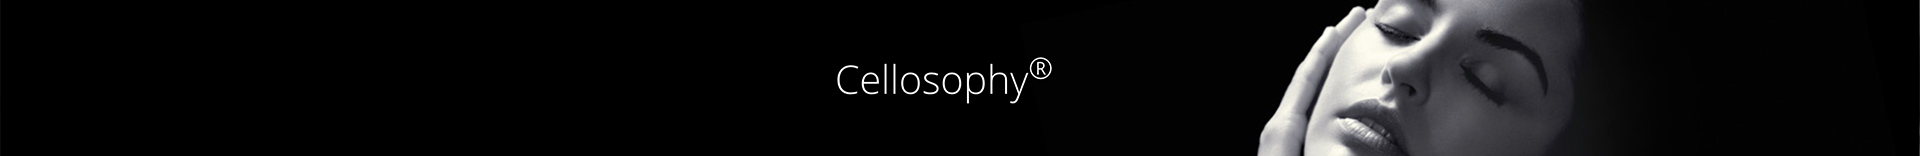 Cellosophy®